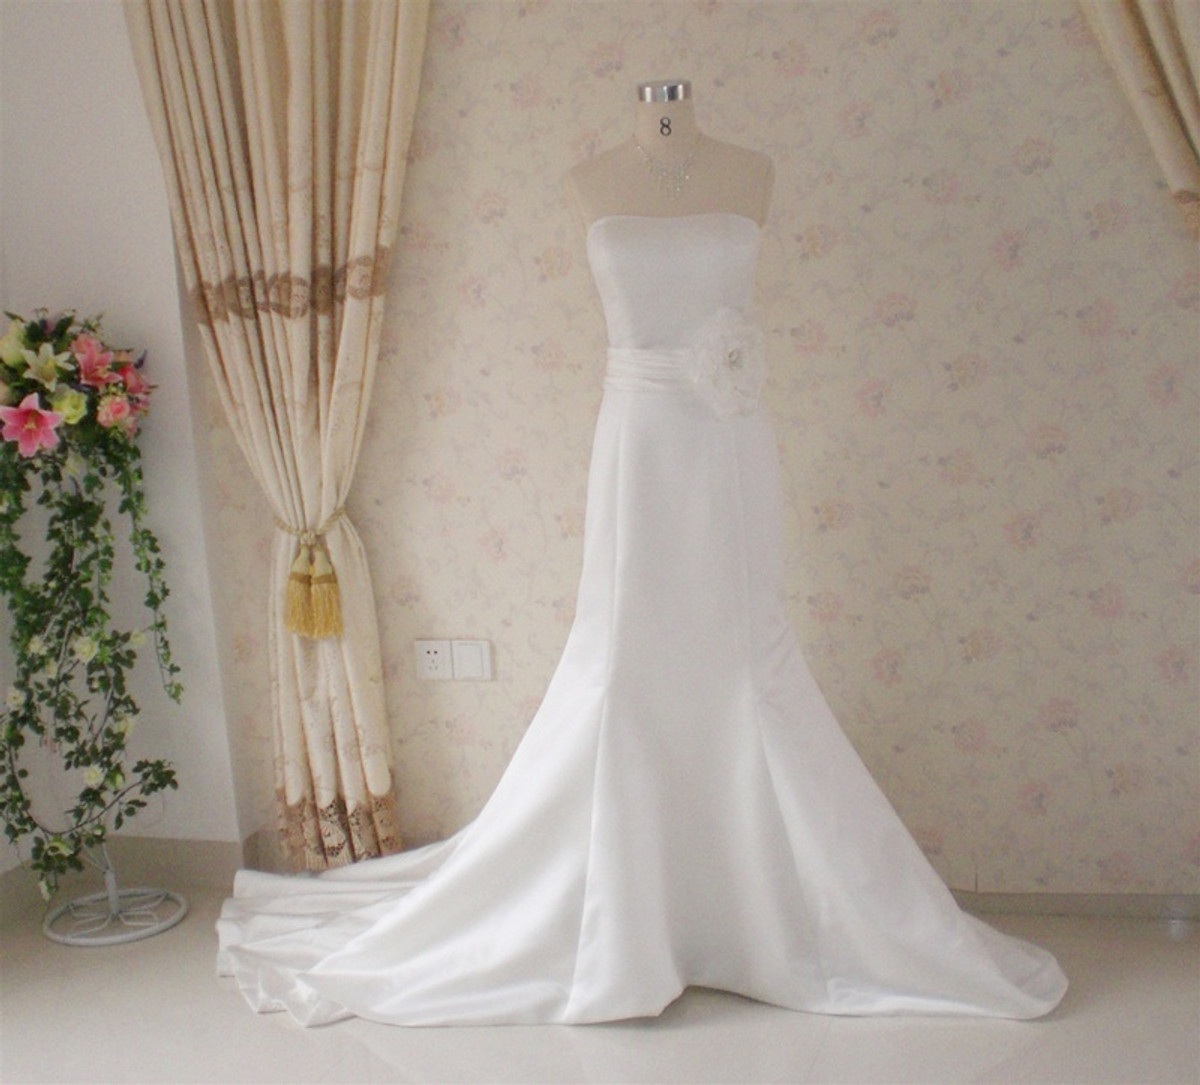 Mermaid Style Vintage Inspired Wedding Dress- Available in Every Color 2